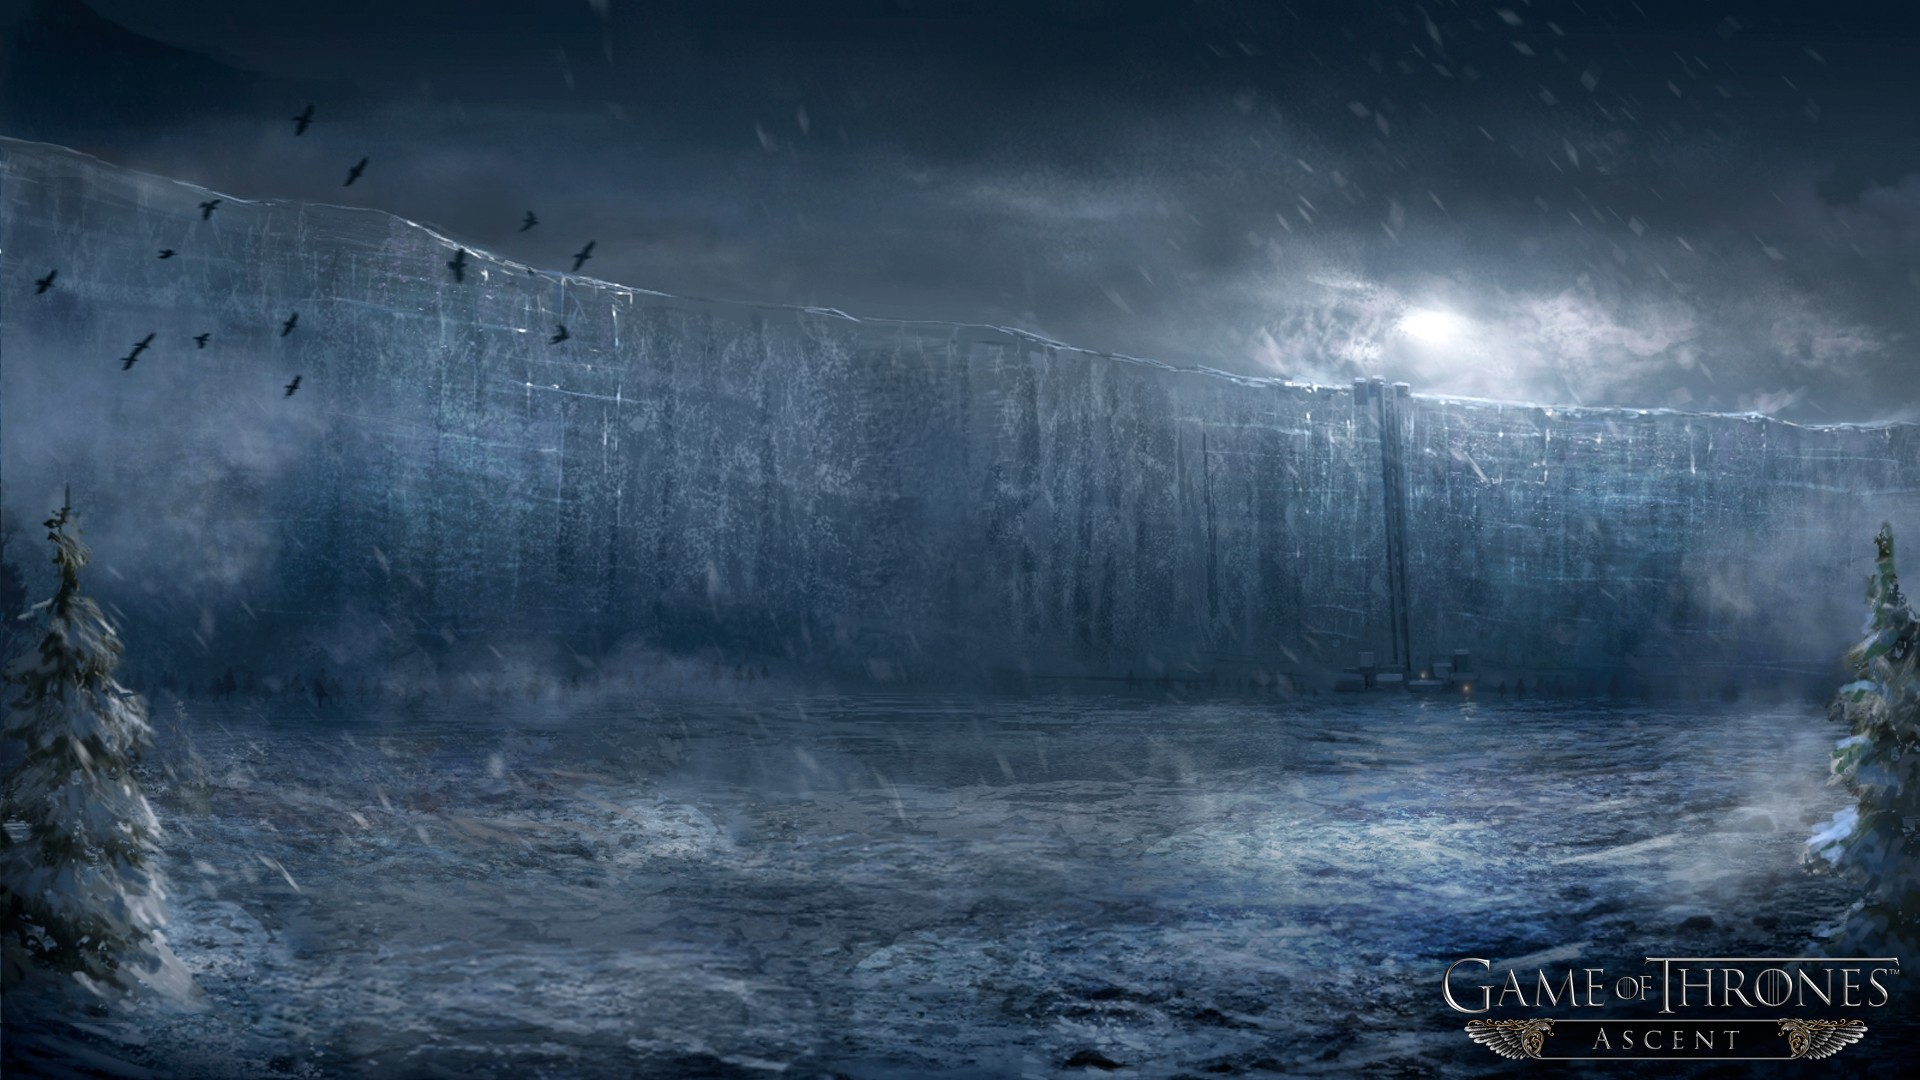 Game Free Ipad Wallpapers: Game Of Thrones Wallpaper 1920x1080 ·① Download Free Cool